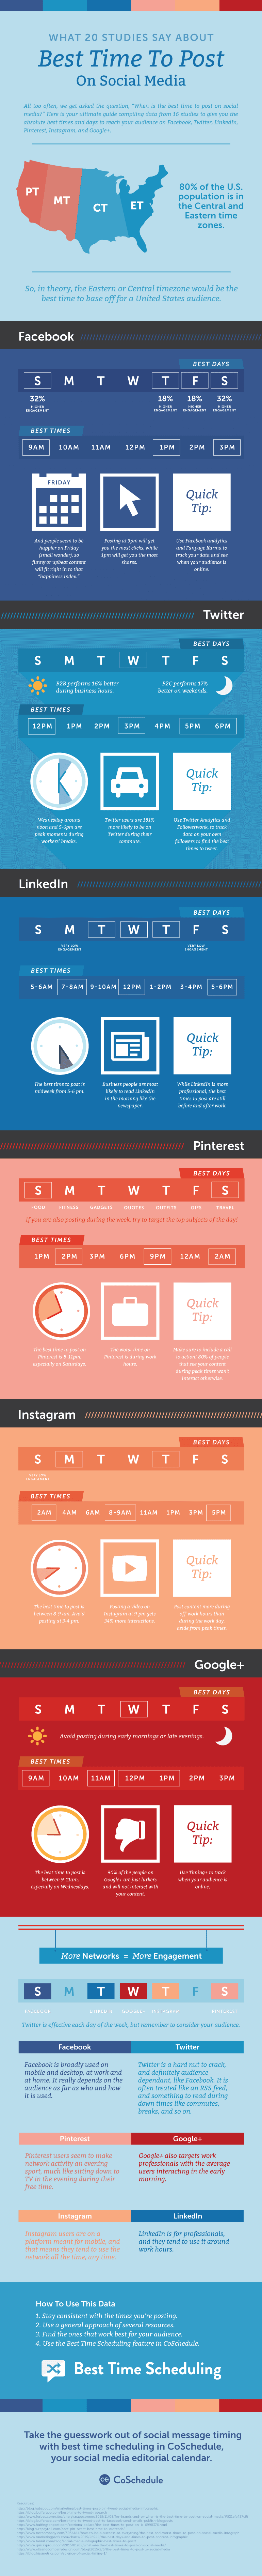 The Best Time to Post on Instagram, Facebook, Twitter, LinkedIn